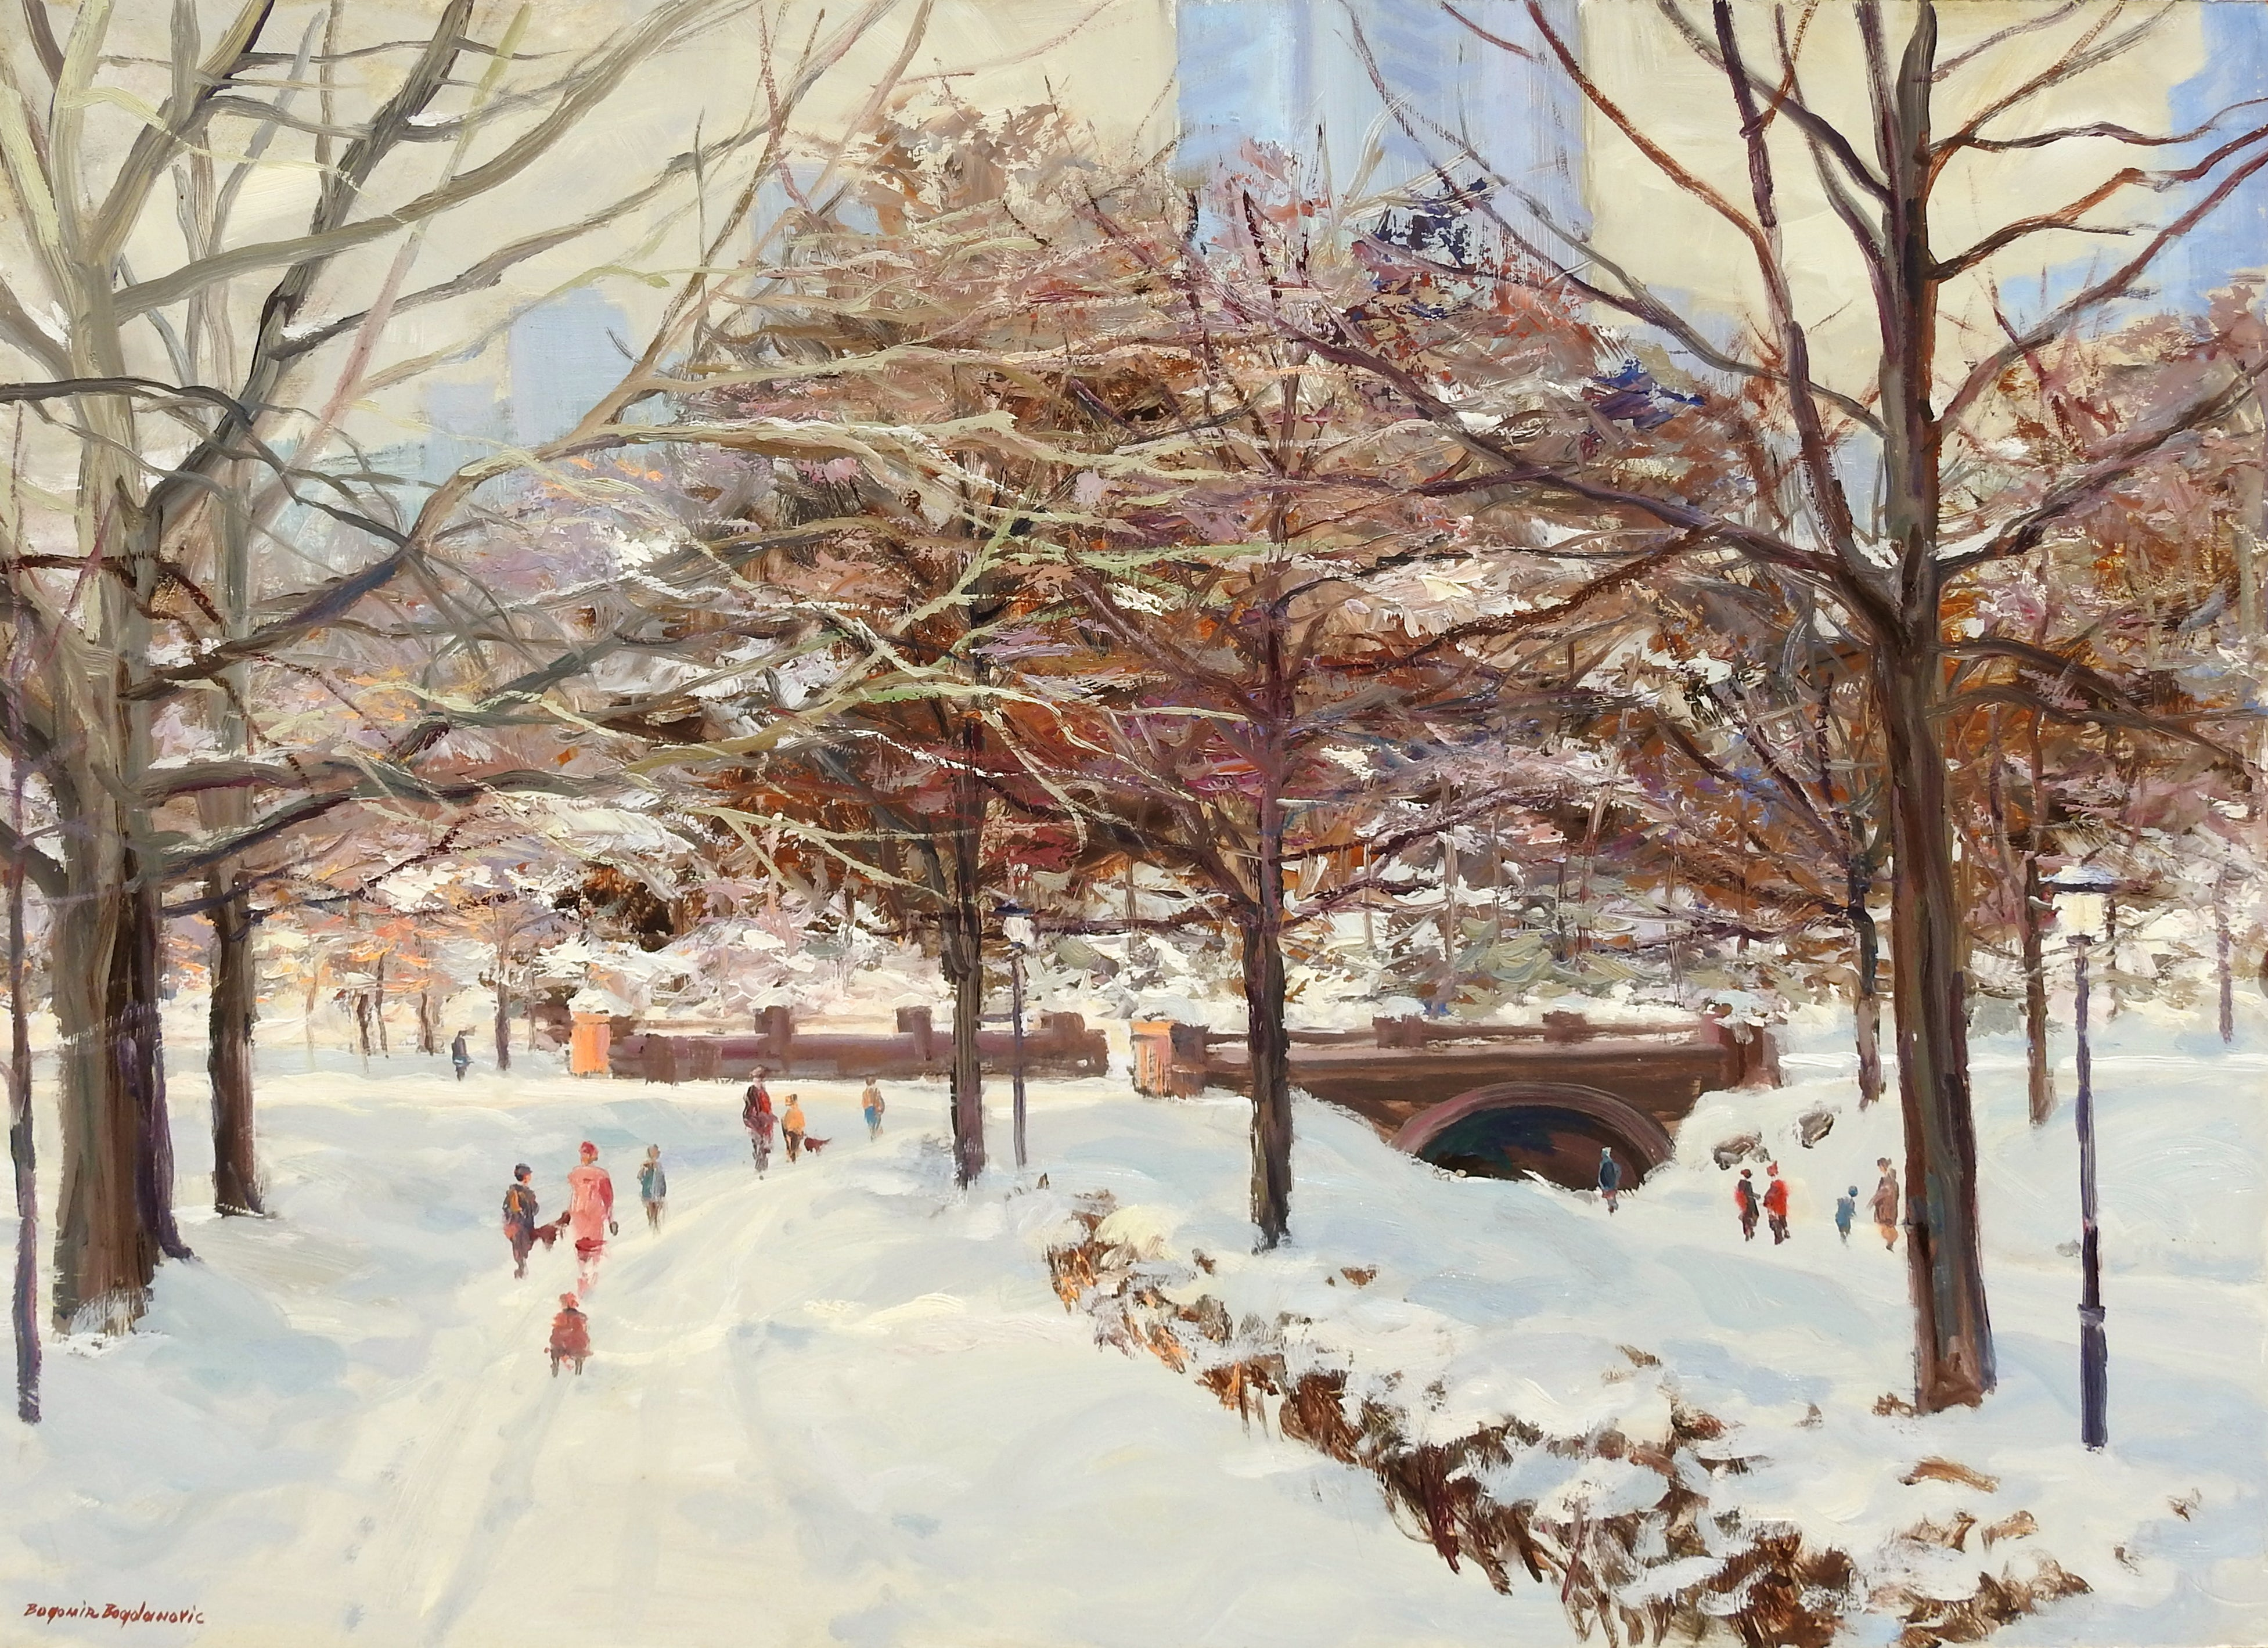 """Vicinity of Metropolitan Museum"", Bogomir Bogdanovic, Oil on Canvas, Impression"